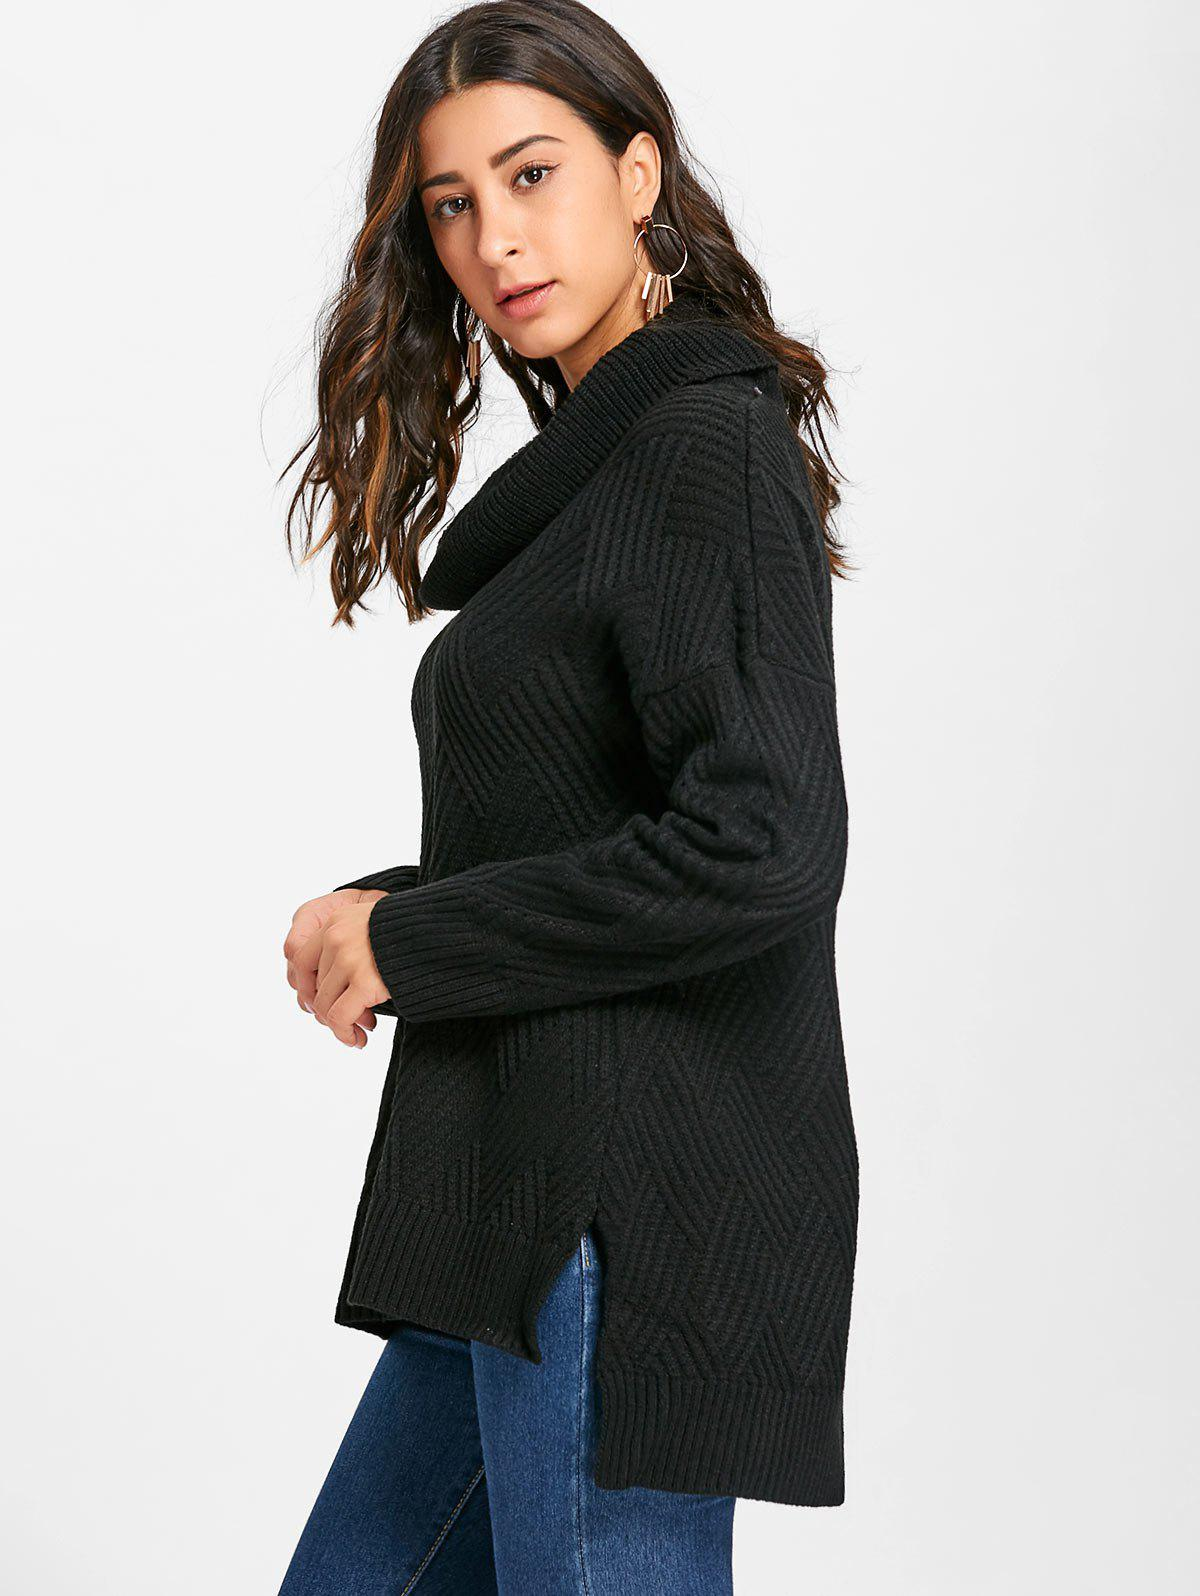 Cowl Neck Side Slit Knitted Sweater - BLACK S